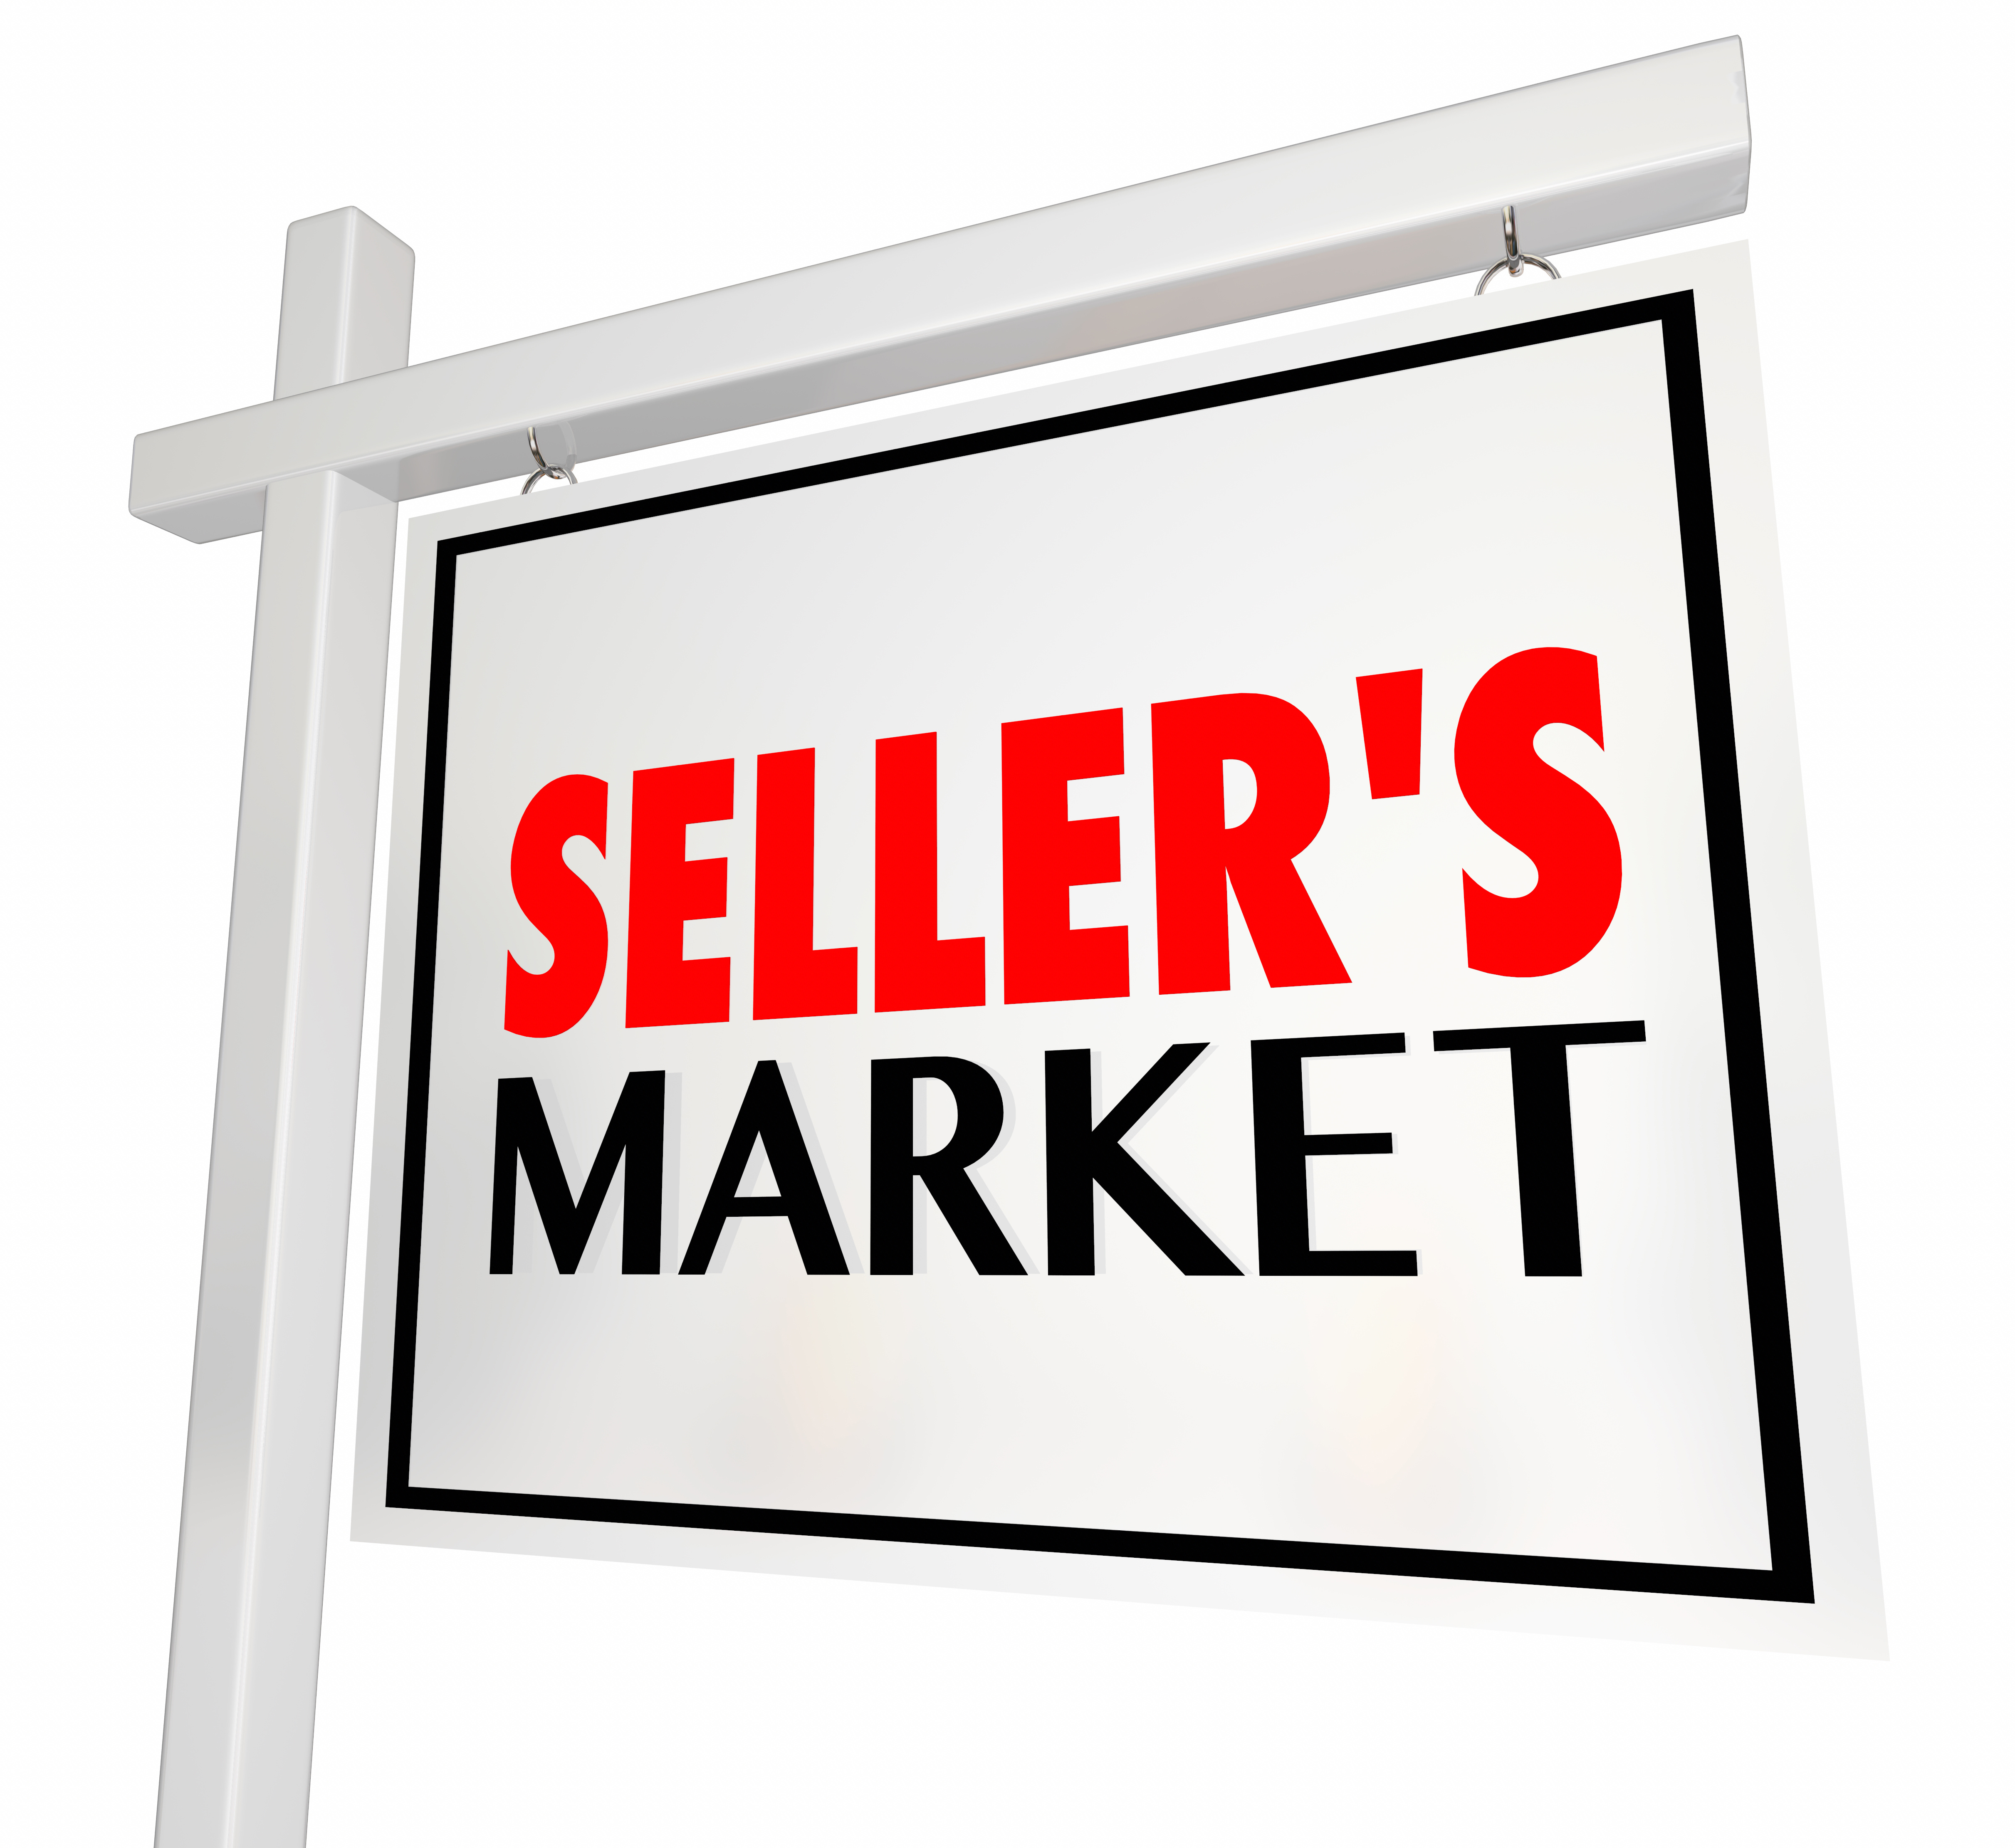 Buyer's Market vs Seller's Market – What's the Difference?